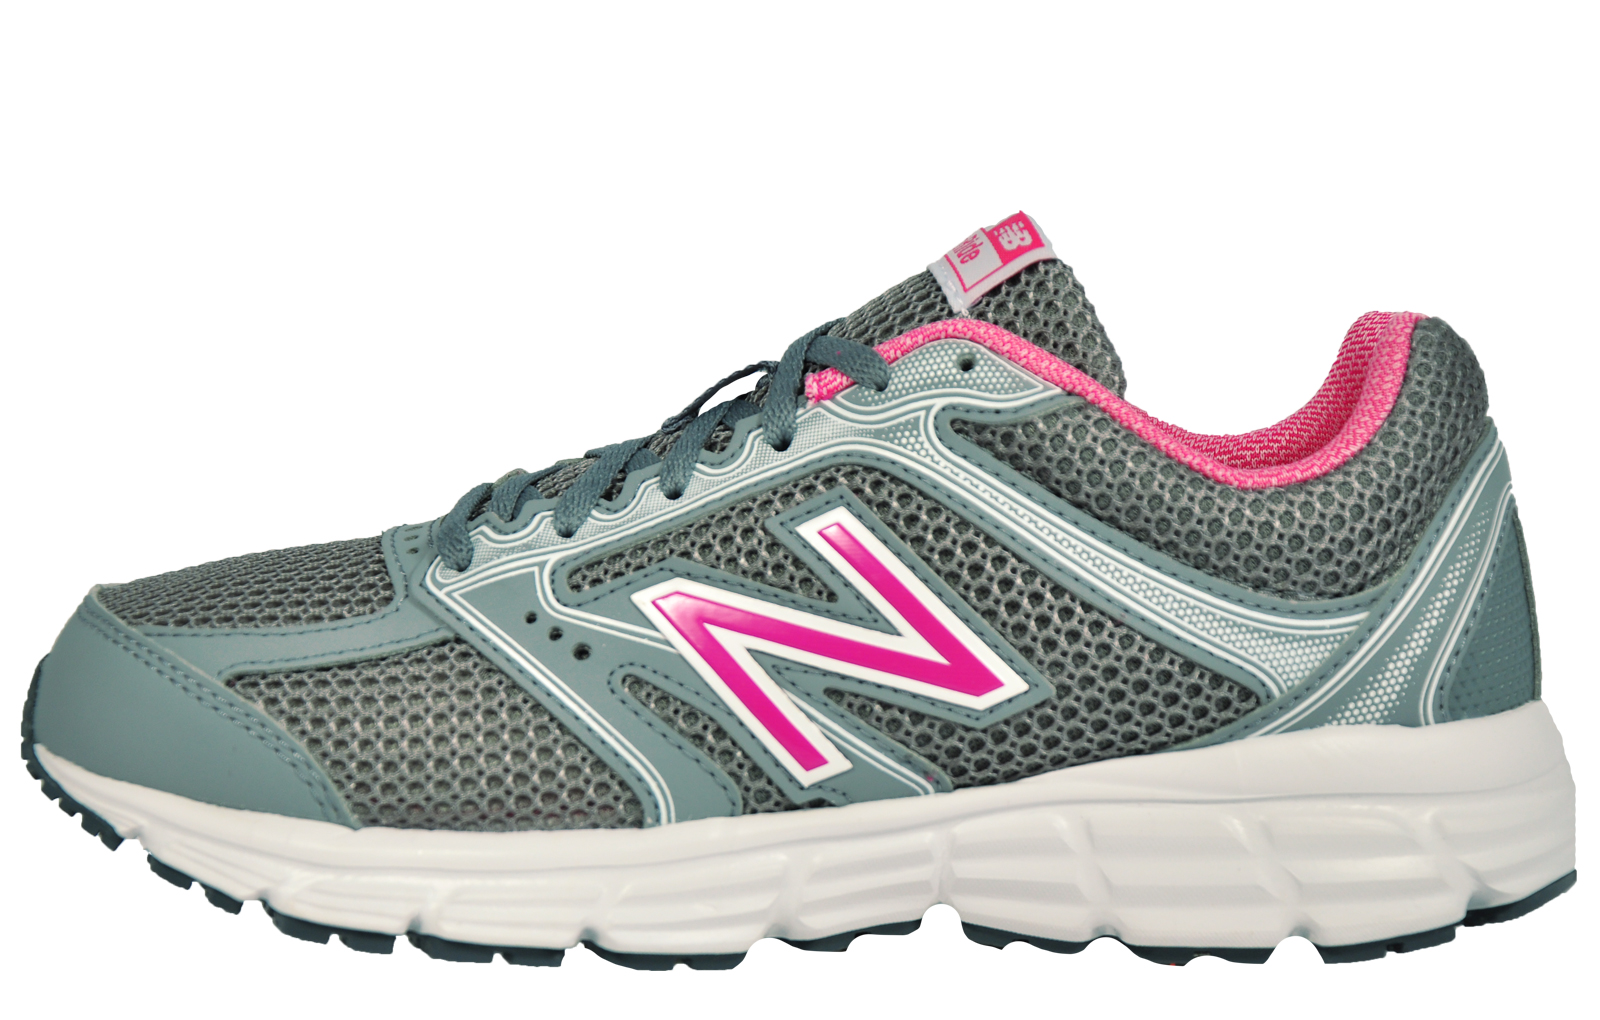 0c1498b114b82 Cheap New Balance Women's Trainers & Shoes | Express Trainers